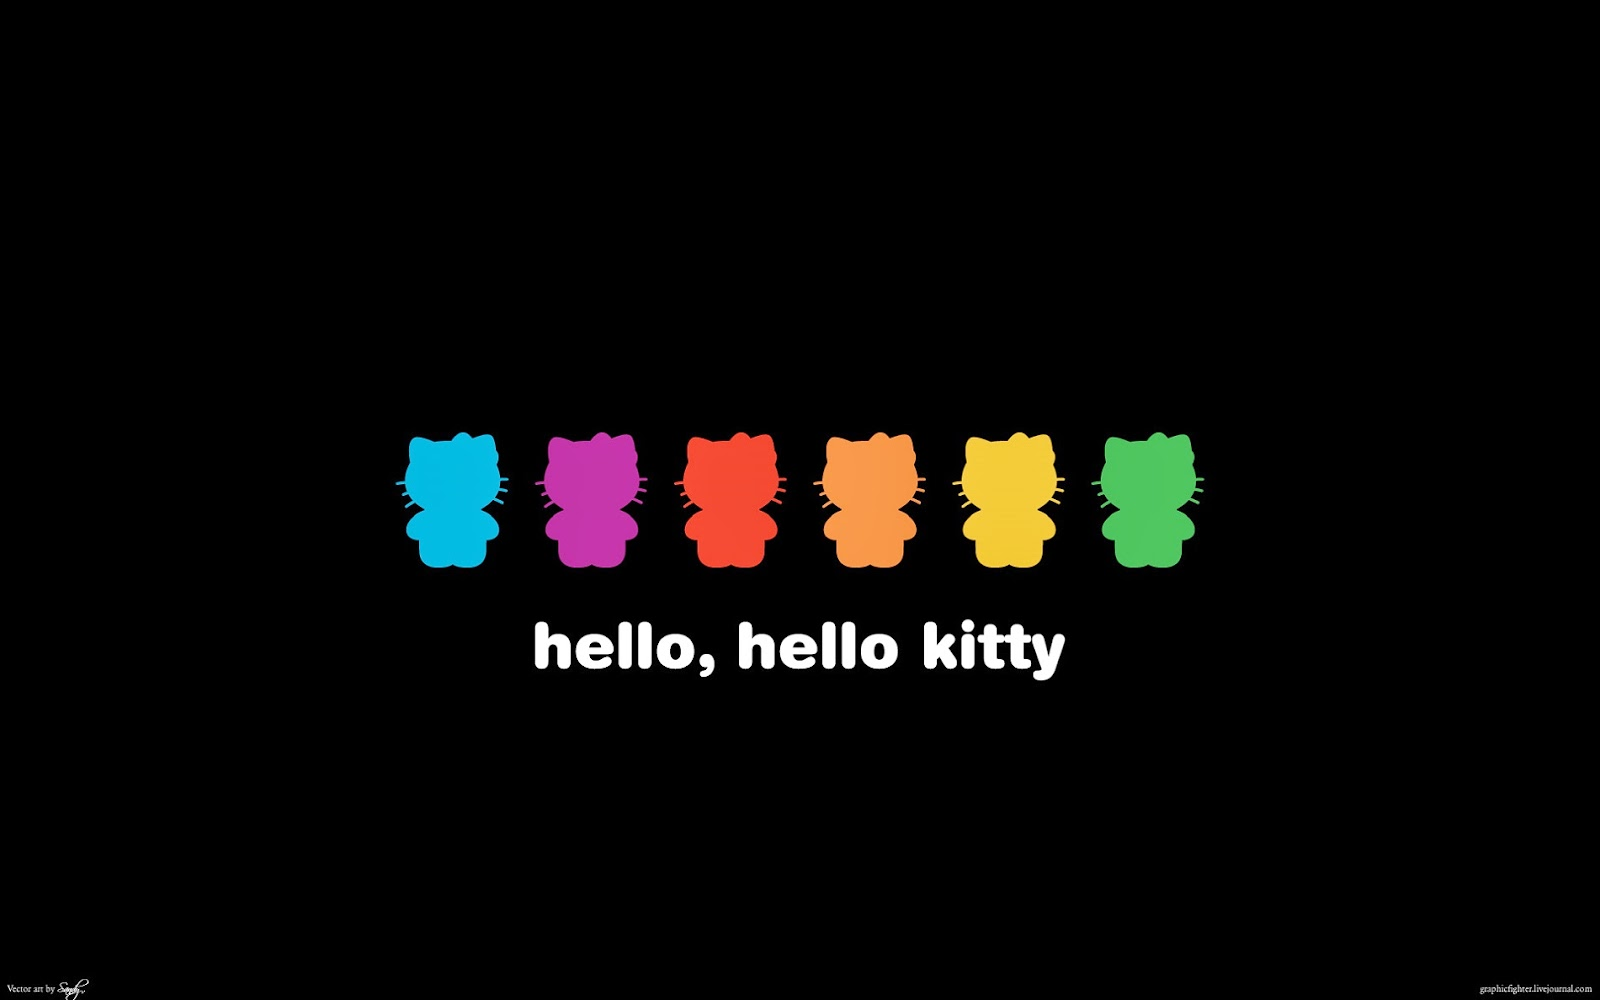 Free Download 30 Best Hello Kitty Hd Wallpapers Free Download